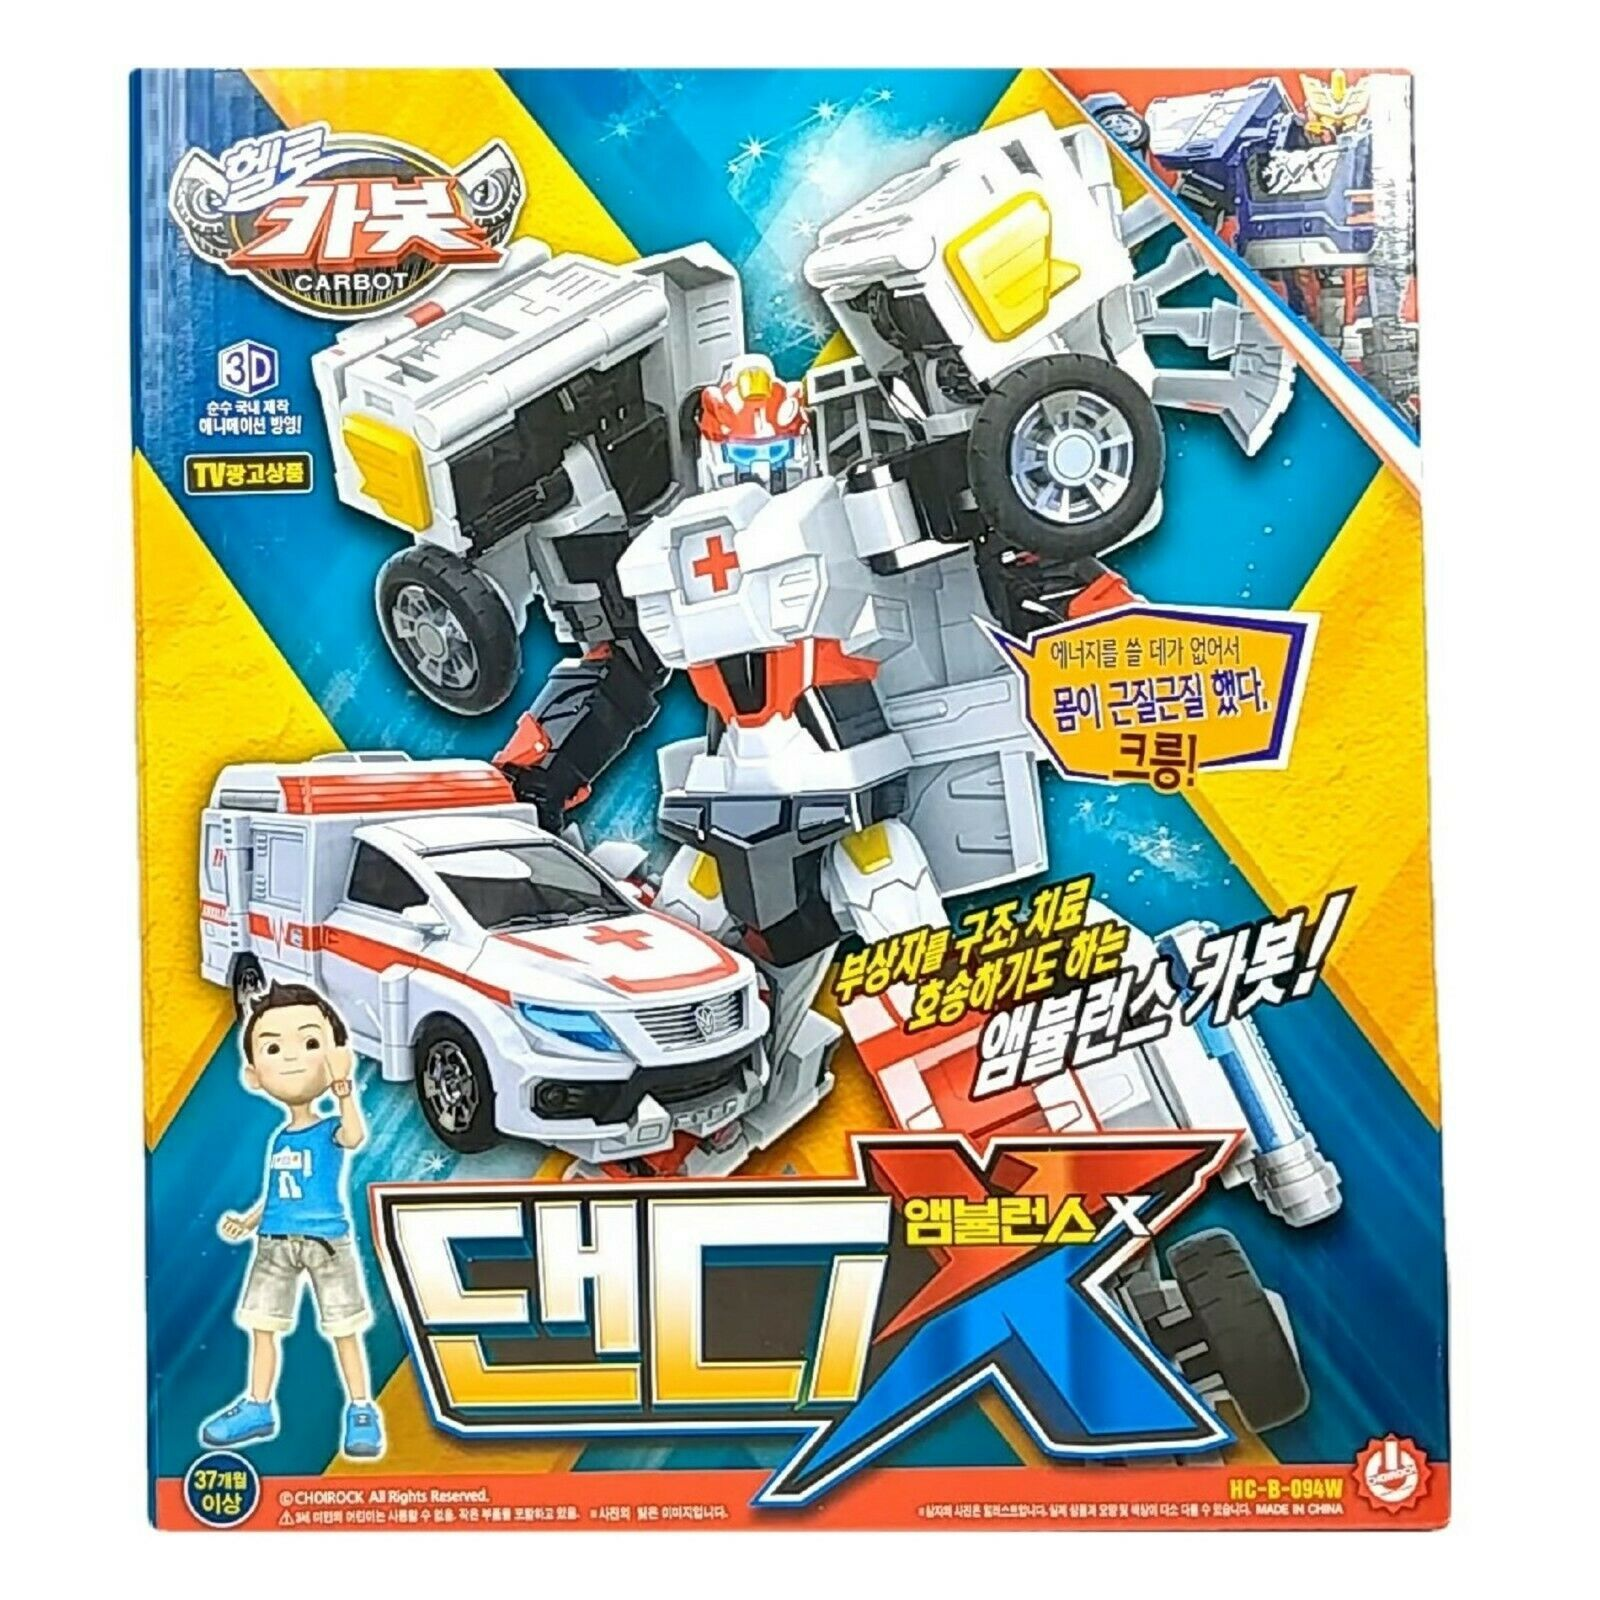 Hello Carbot Dandy Ambulance X Action Figure Transformation Robot Vehicle Toy